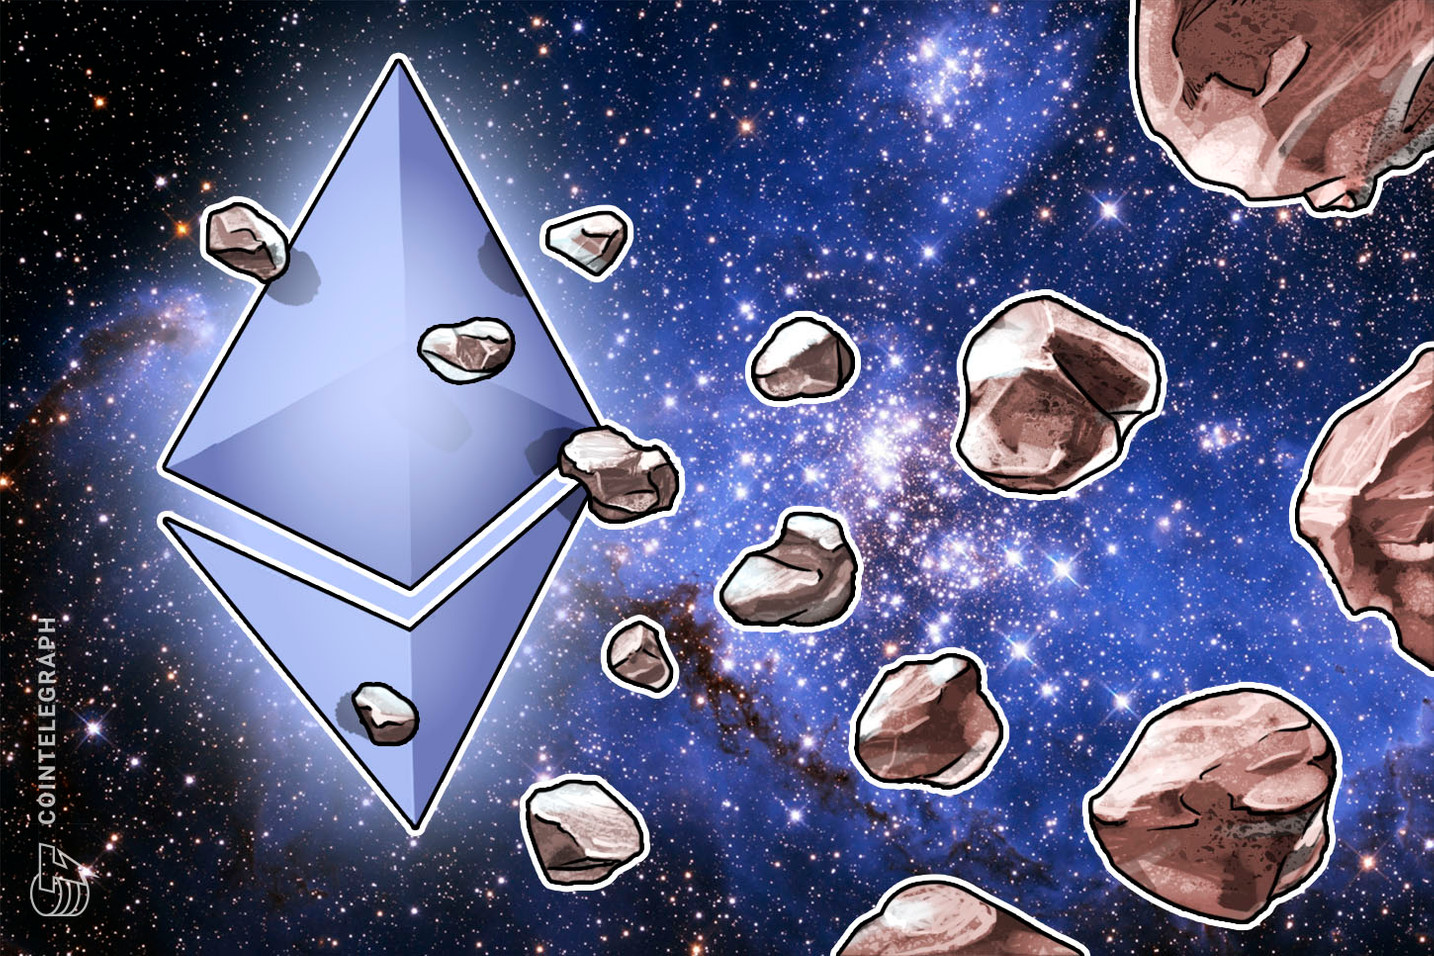 Research: Ethereum-Based Prediction Market Augur Currently Faces a Design Flaw Attack